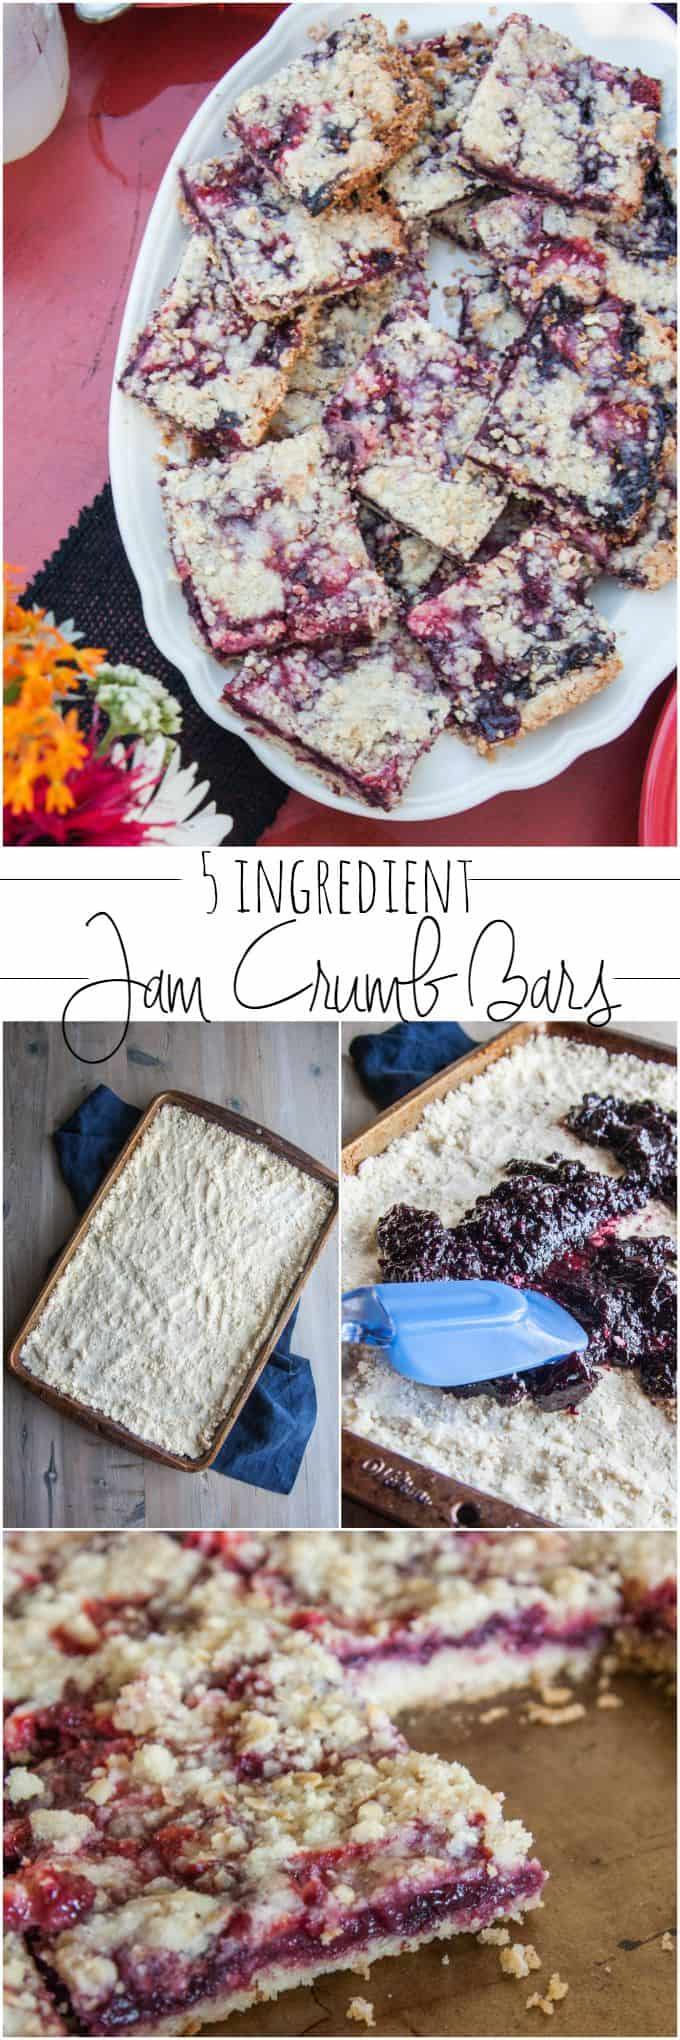 5 ingredient jam crumb bars - a super easy dessert that feeds a crowd from @sweetphi